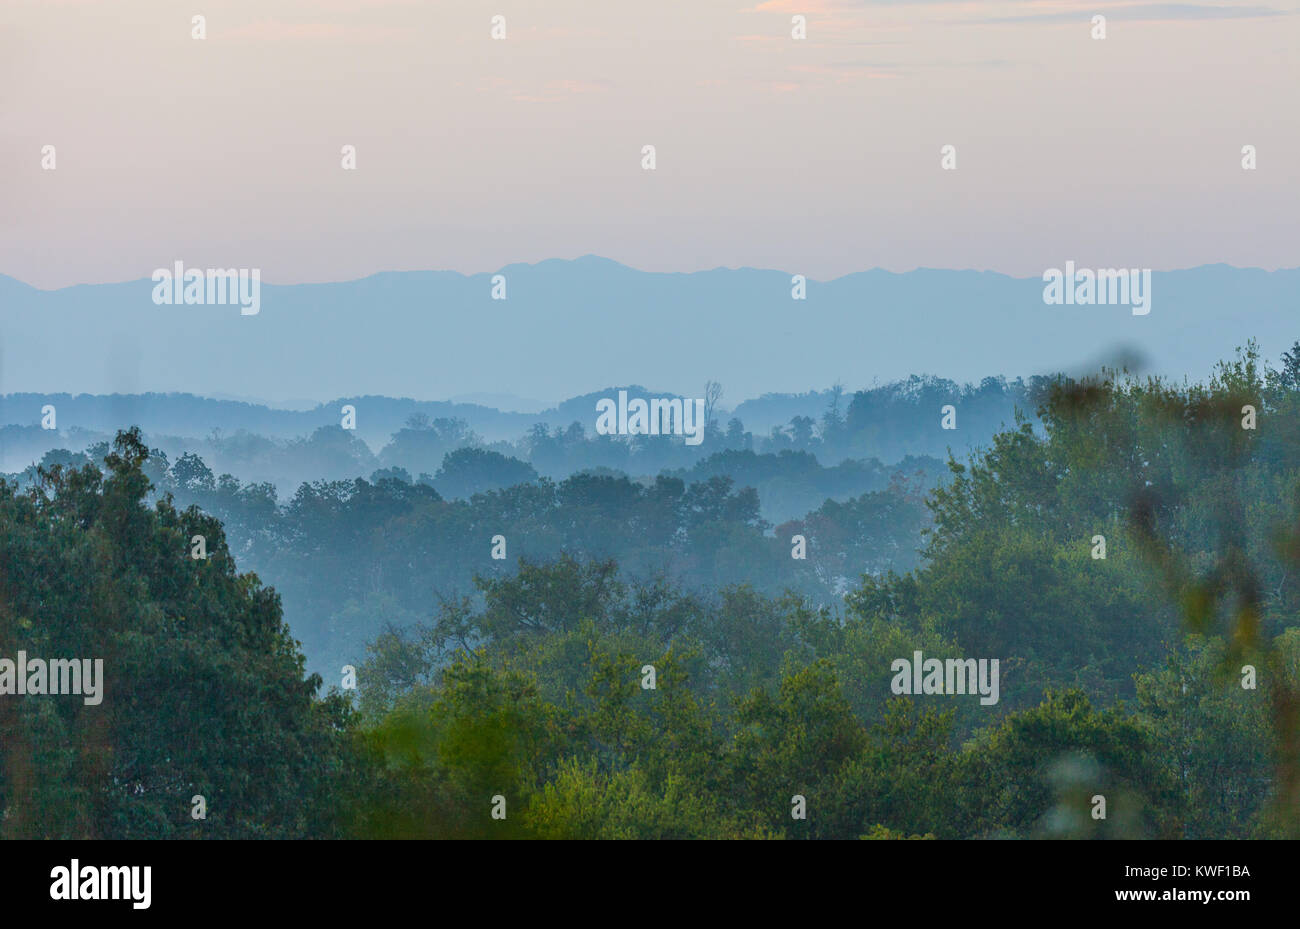 Early morning view of the Smoky Mountains from Seven Islands State Birding Park. - Stock Image